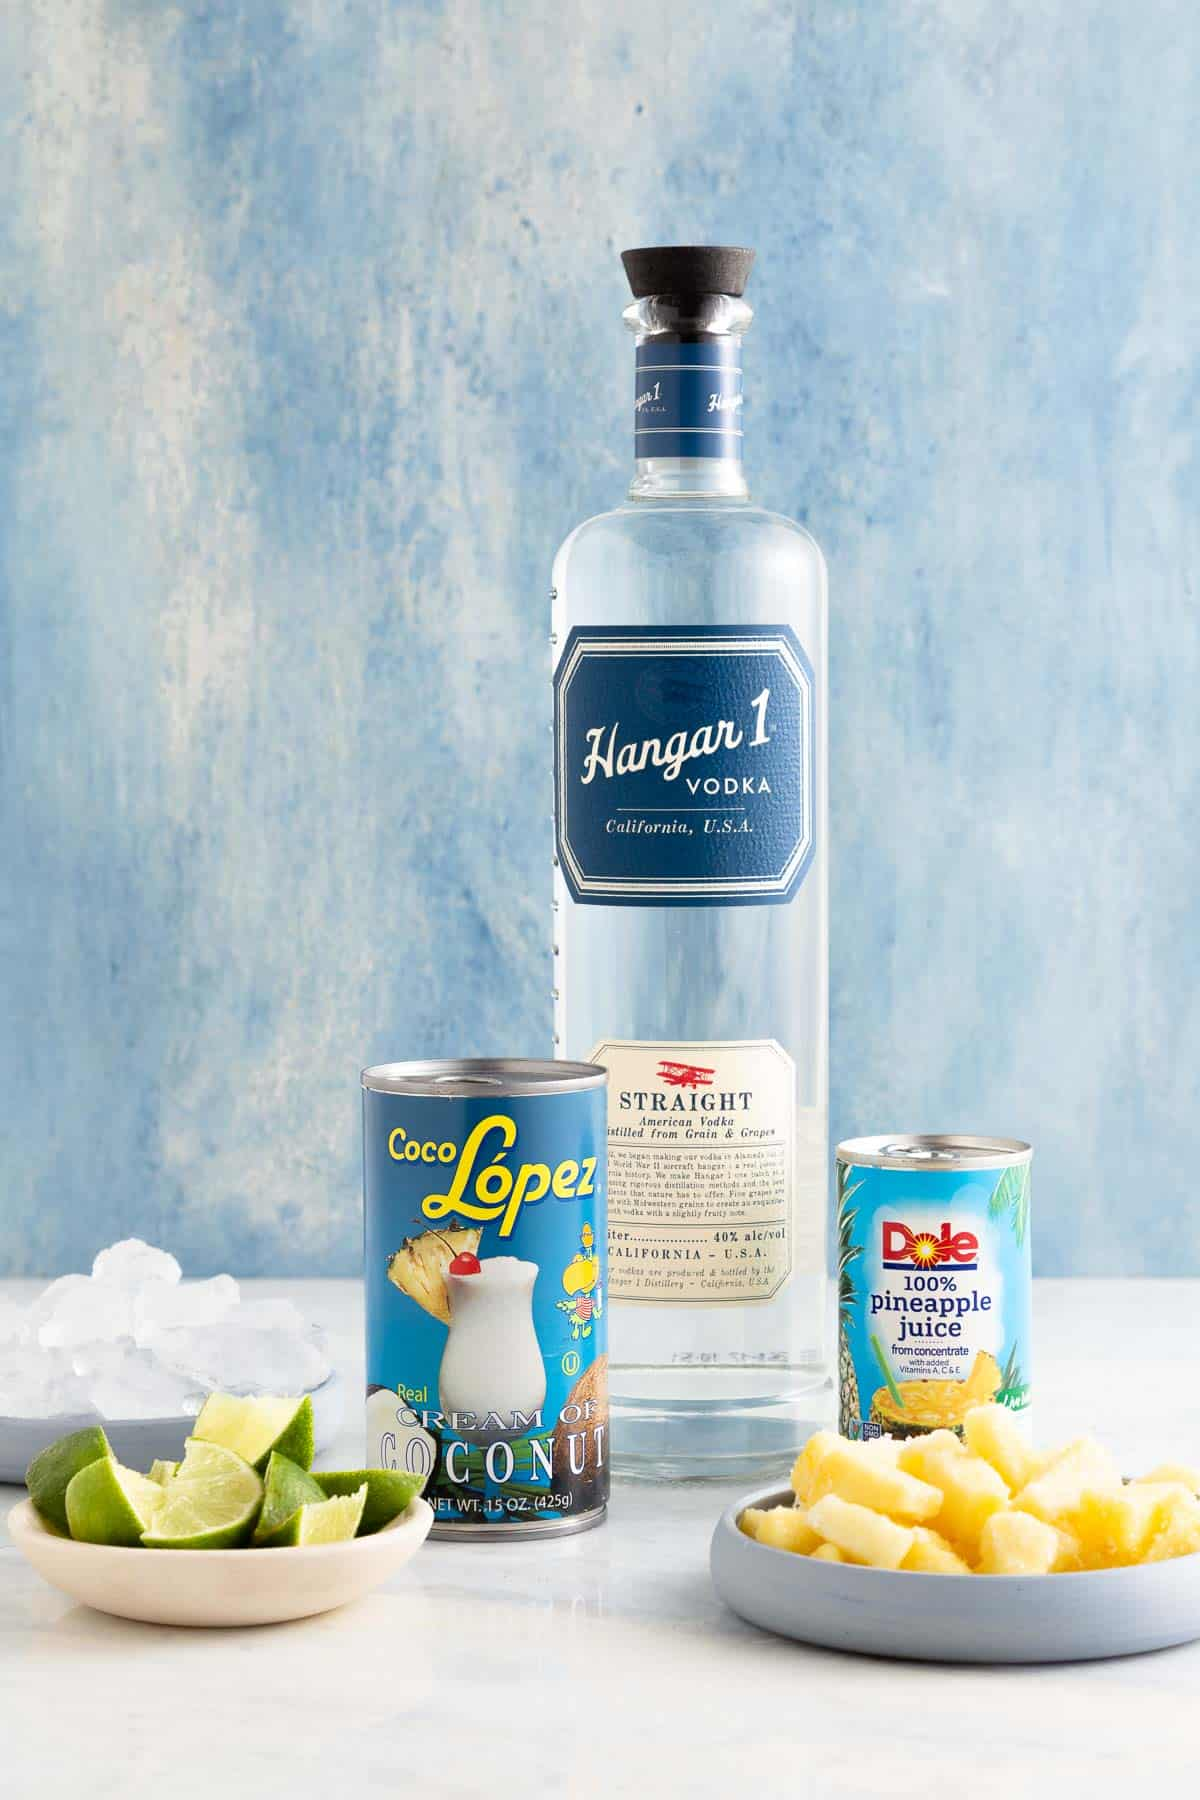 bottle of vodka next to cans of coconut, pineapple juice, and white plates with pineapple and lime